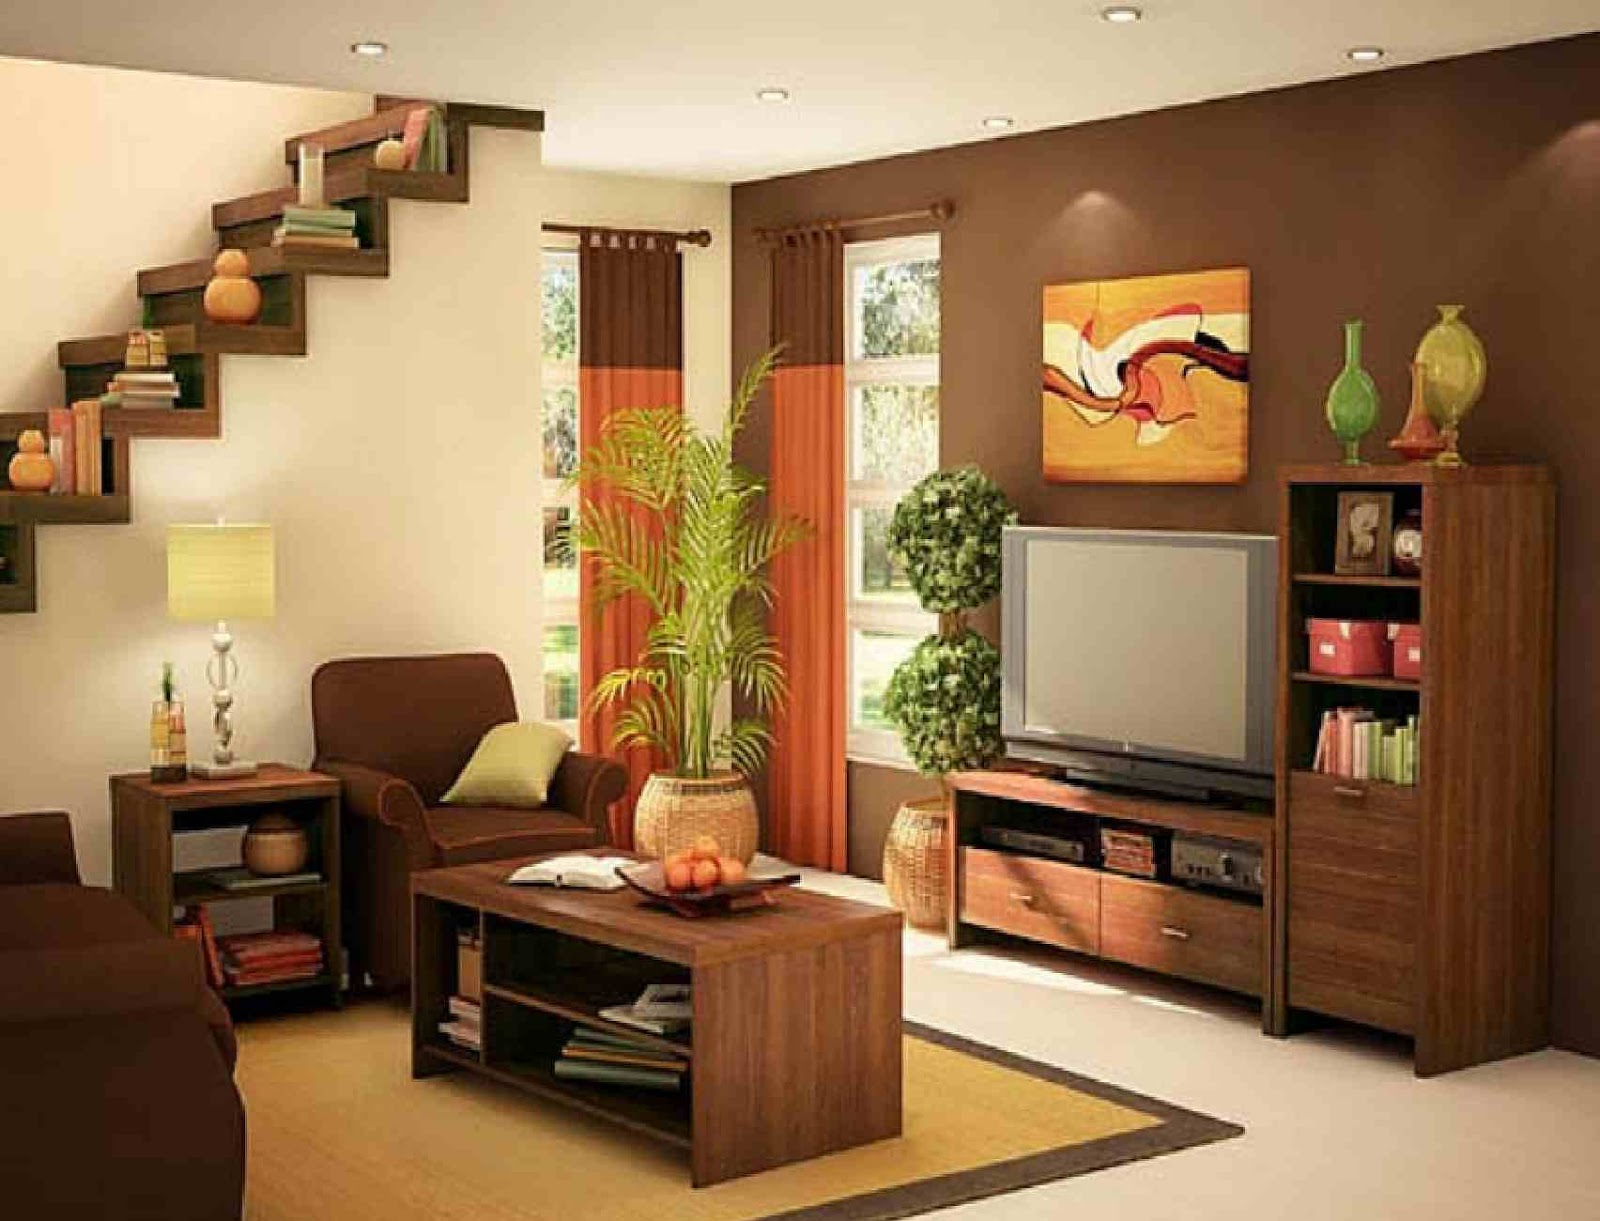 Home interior designs simple living room designs for Simplistic living room